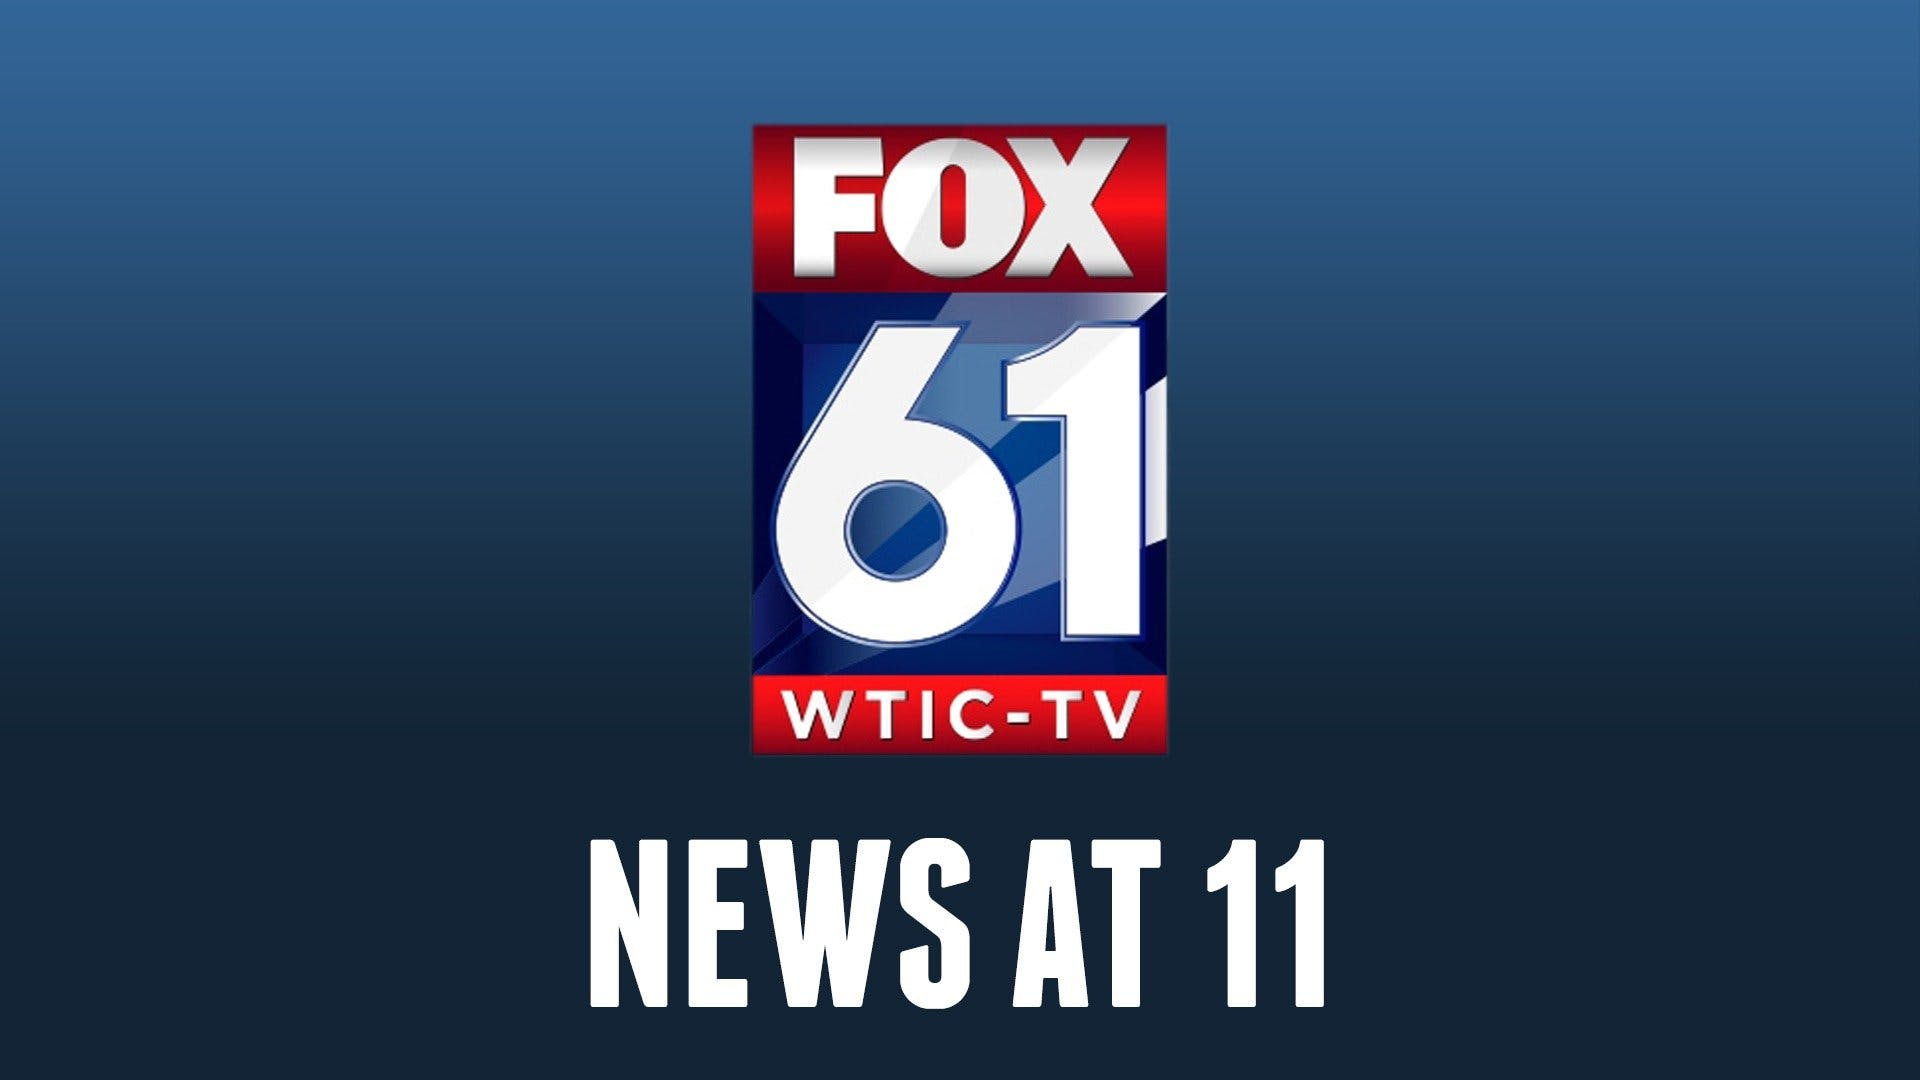 Watch FOX 61 News at 11 | Stream on fuboTV (Free Trial)